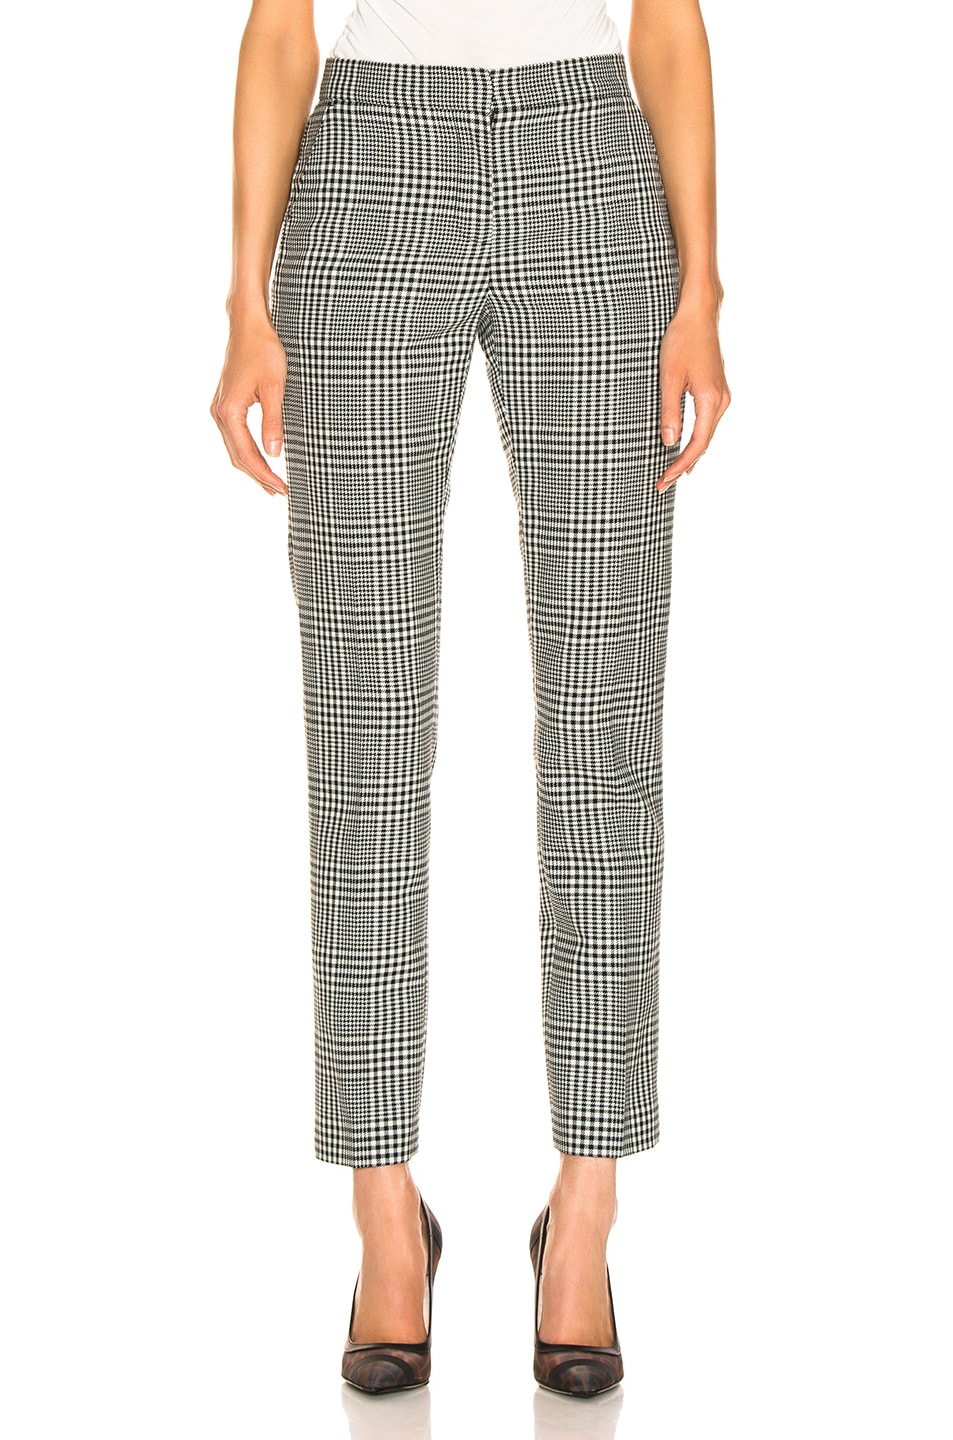 Image 1 of Burberry Hanover Pant in Mist Green Chalk